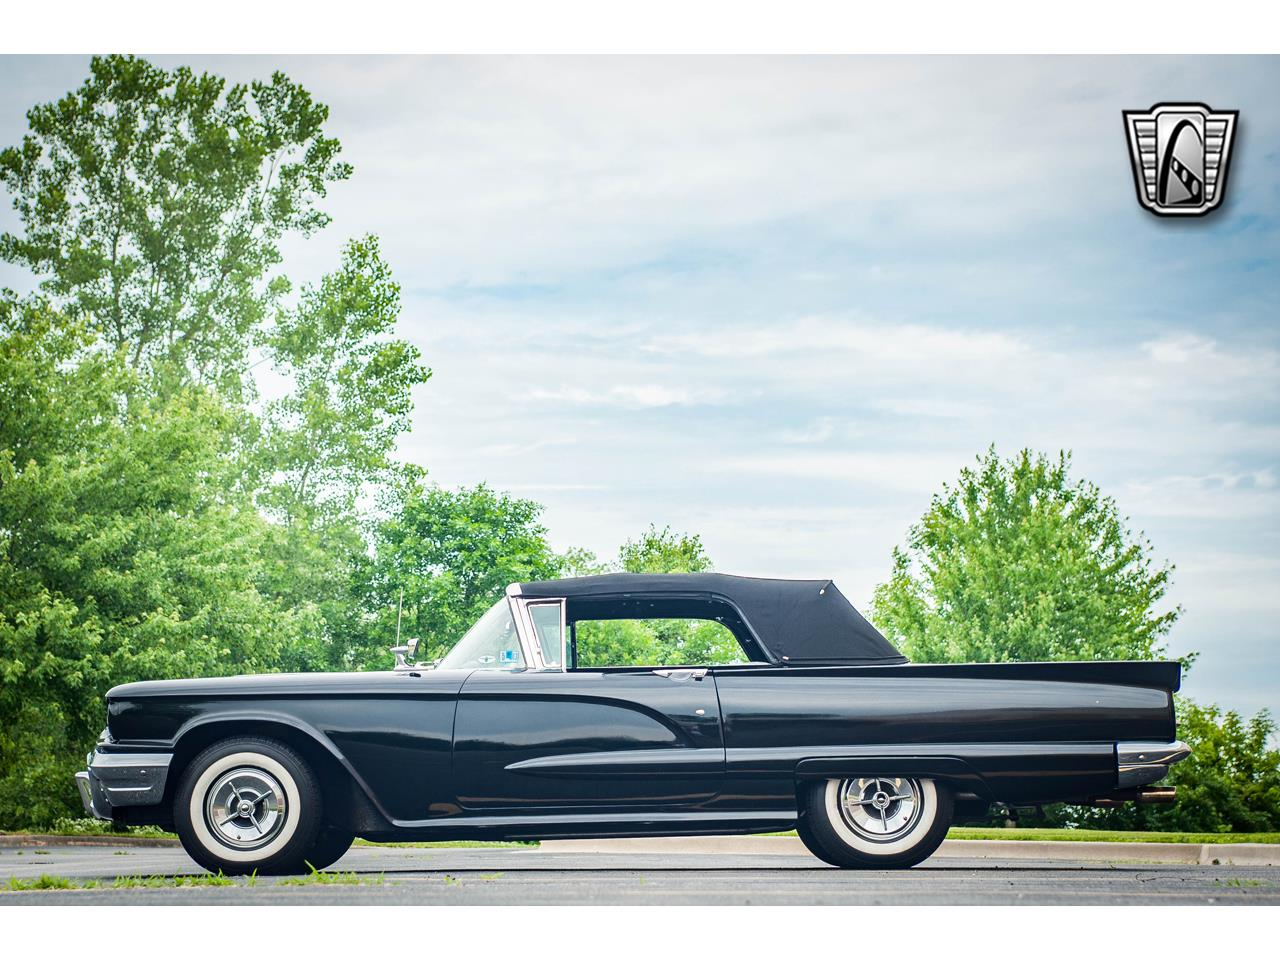 Large Picture of Classic '60 Ford Thunderbird located in O'Fallon Illinois Offered by Gateway Classic Cars - St. Louis - QB9W